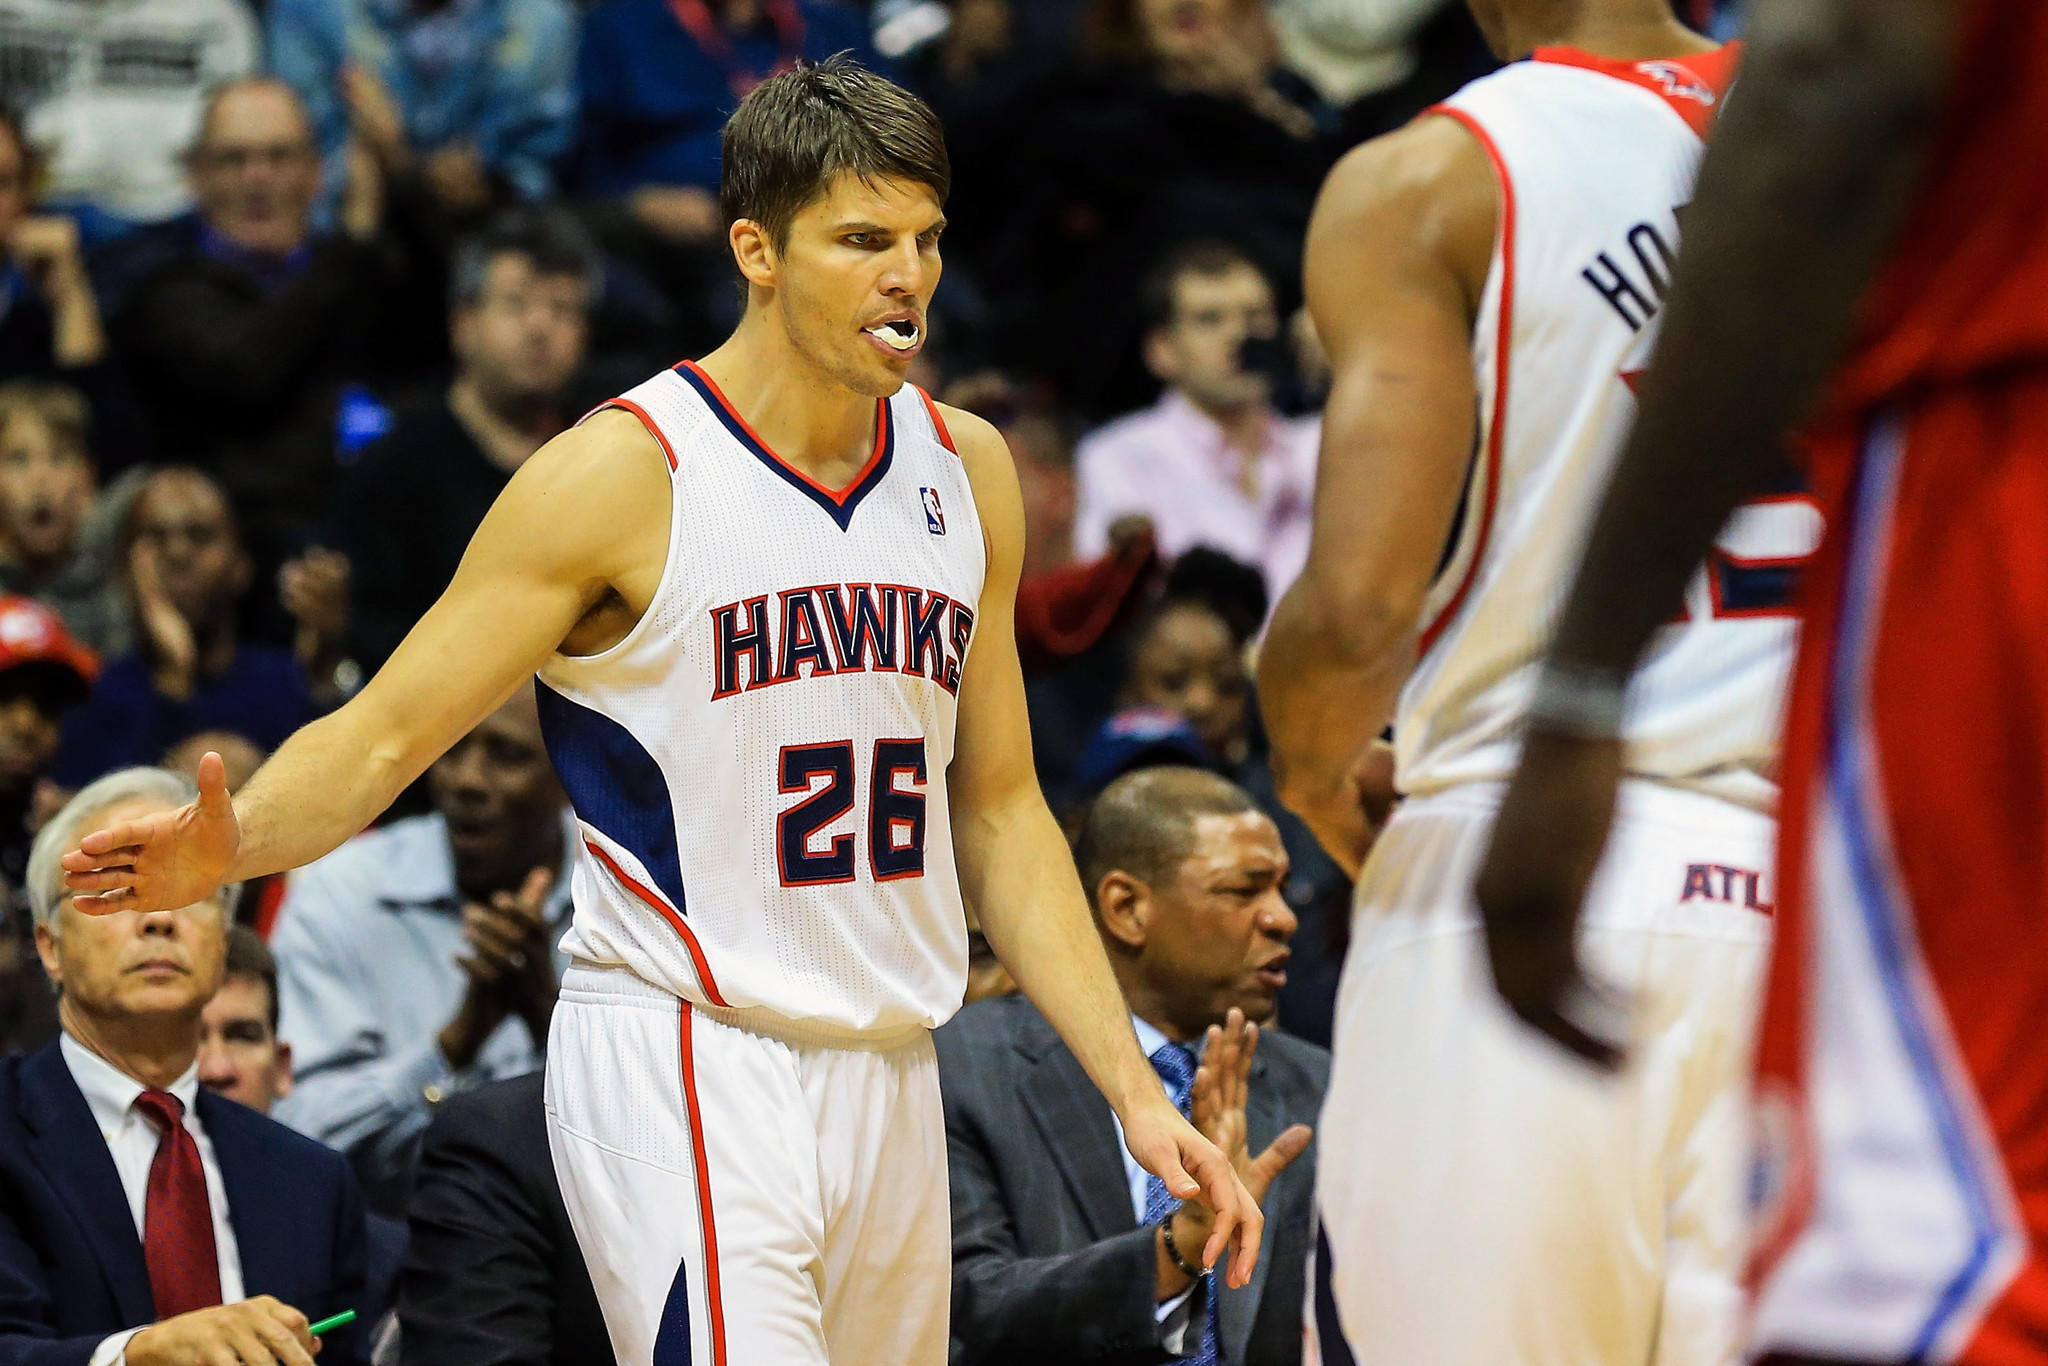 Hawks shooting guard Kyle Korver celebrates shooting a three in the second half against the Clippers.